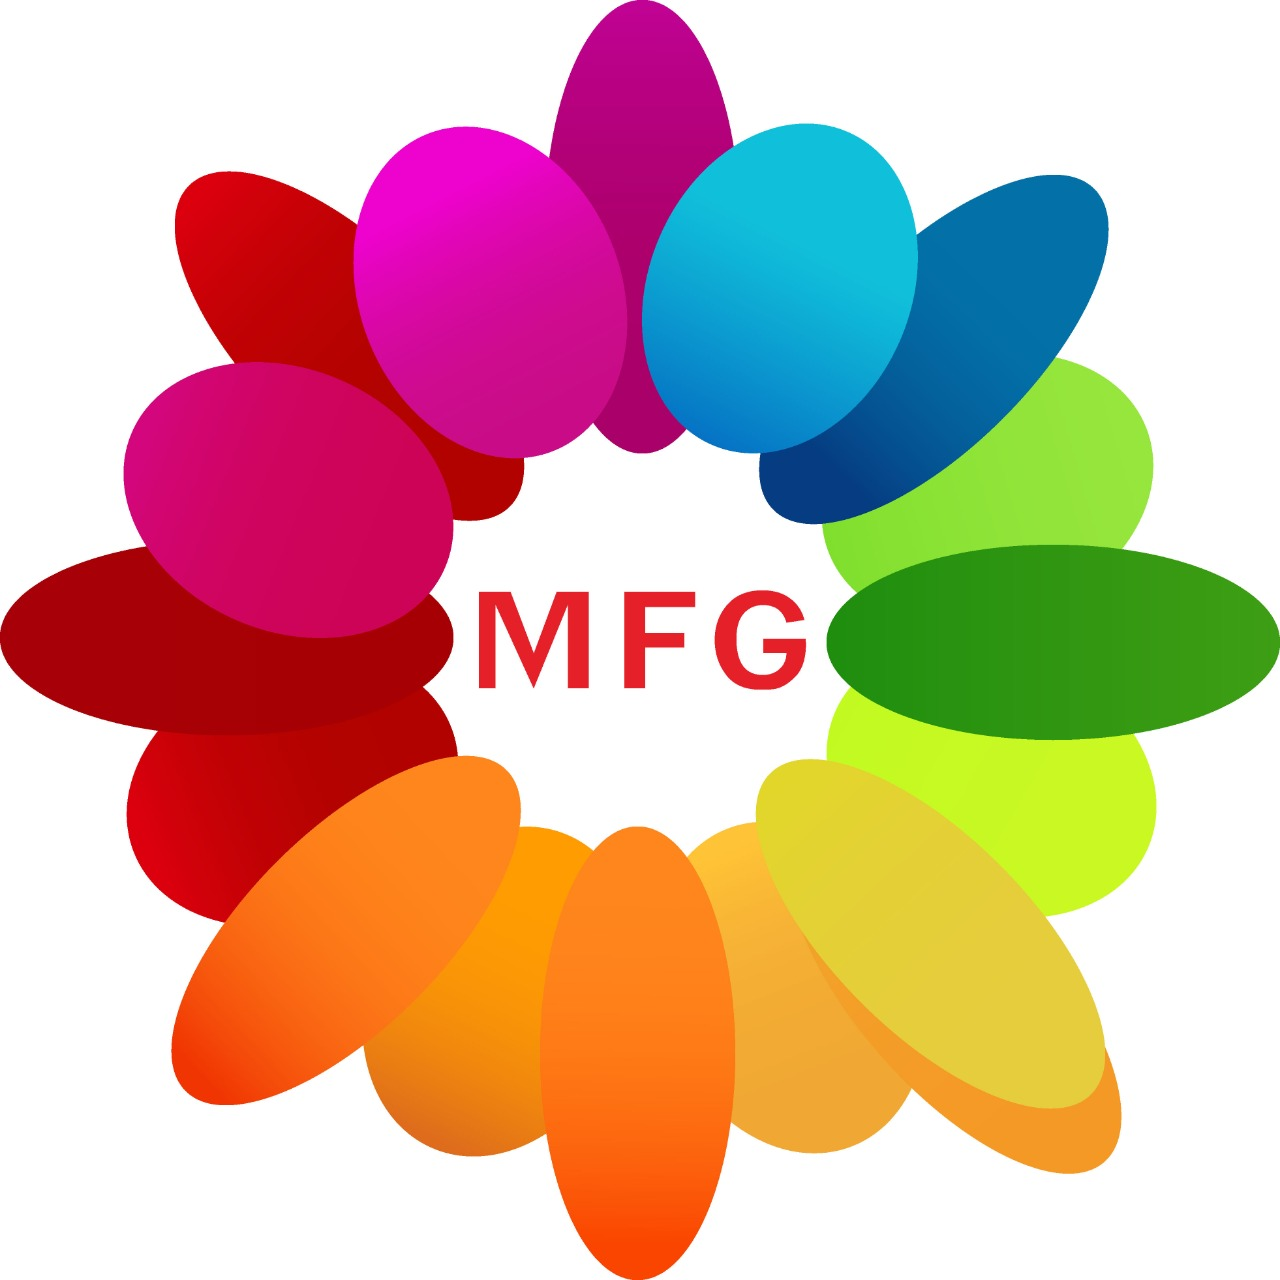 Bunch of 10 red roses with 1 pound chocovanilla cake with 3 dairymilk silk chocolates